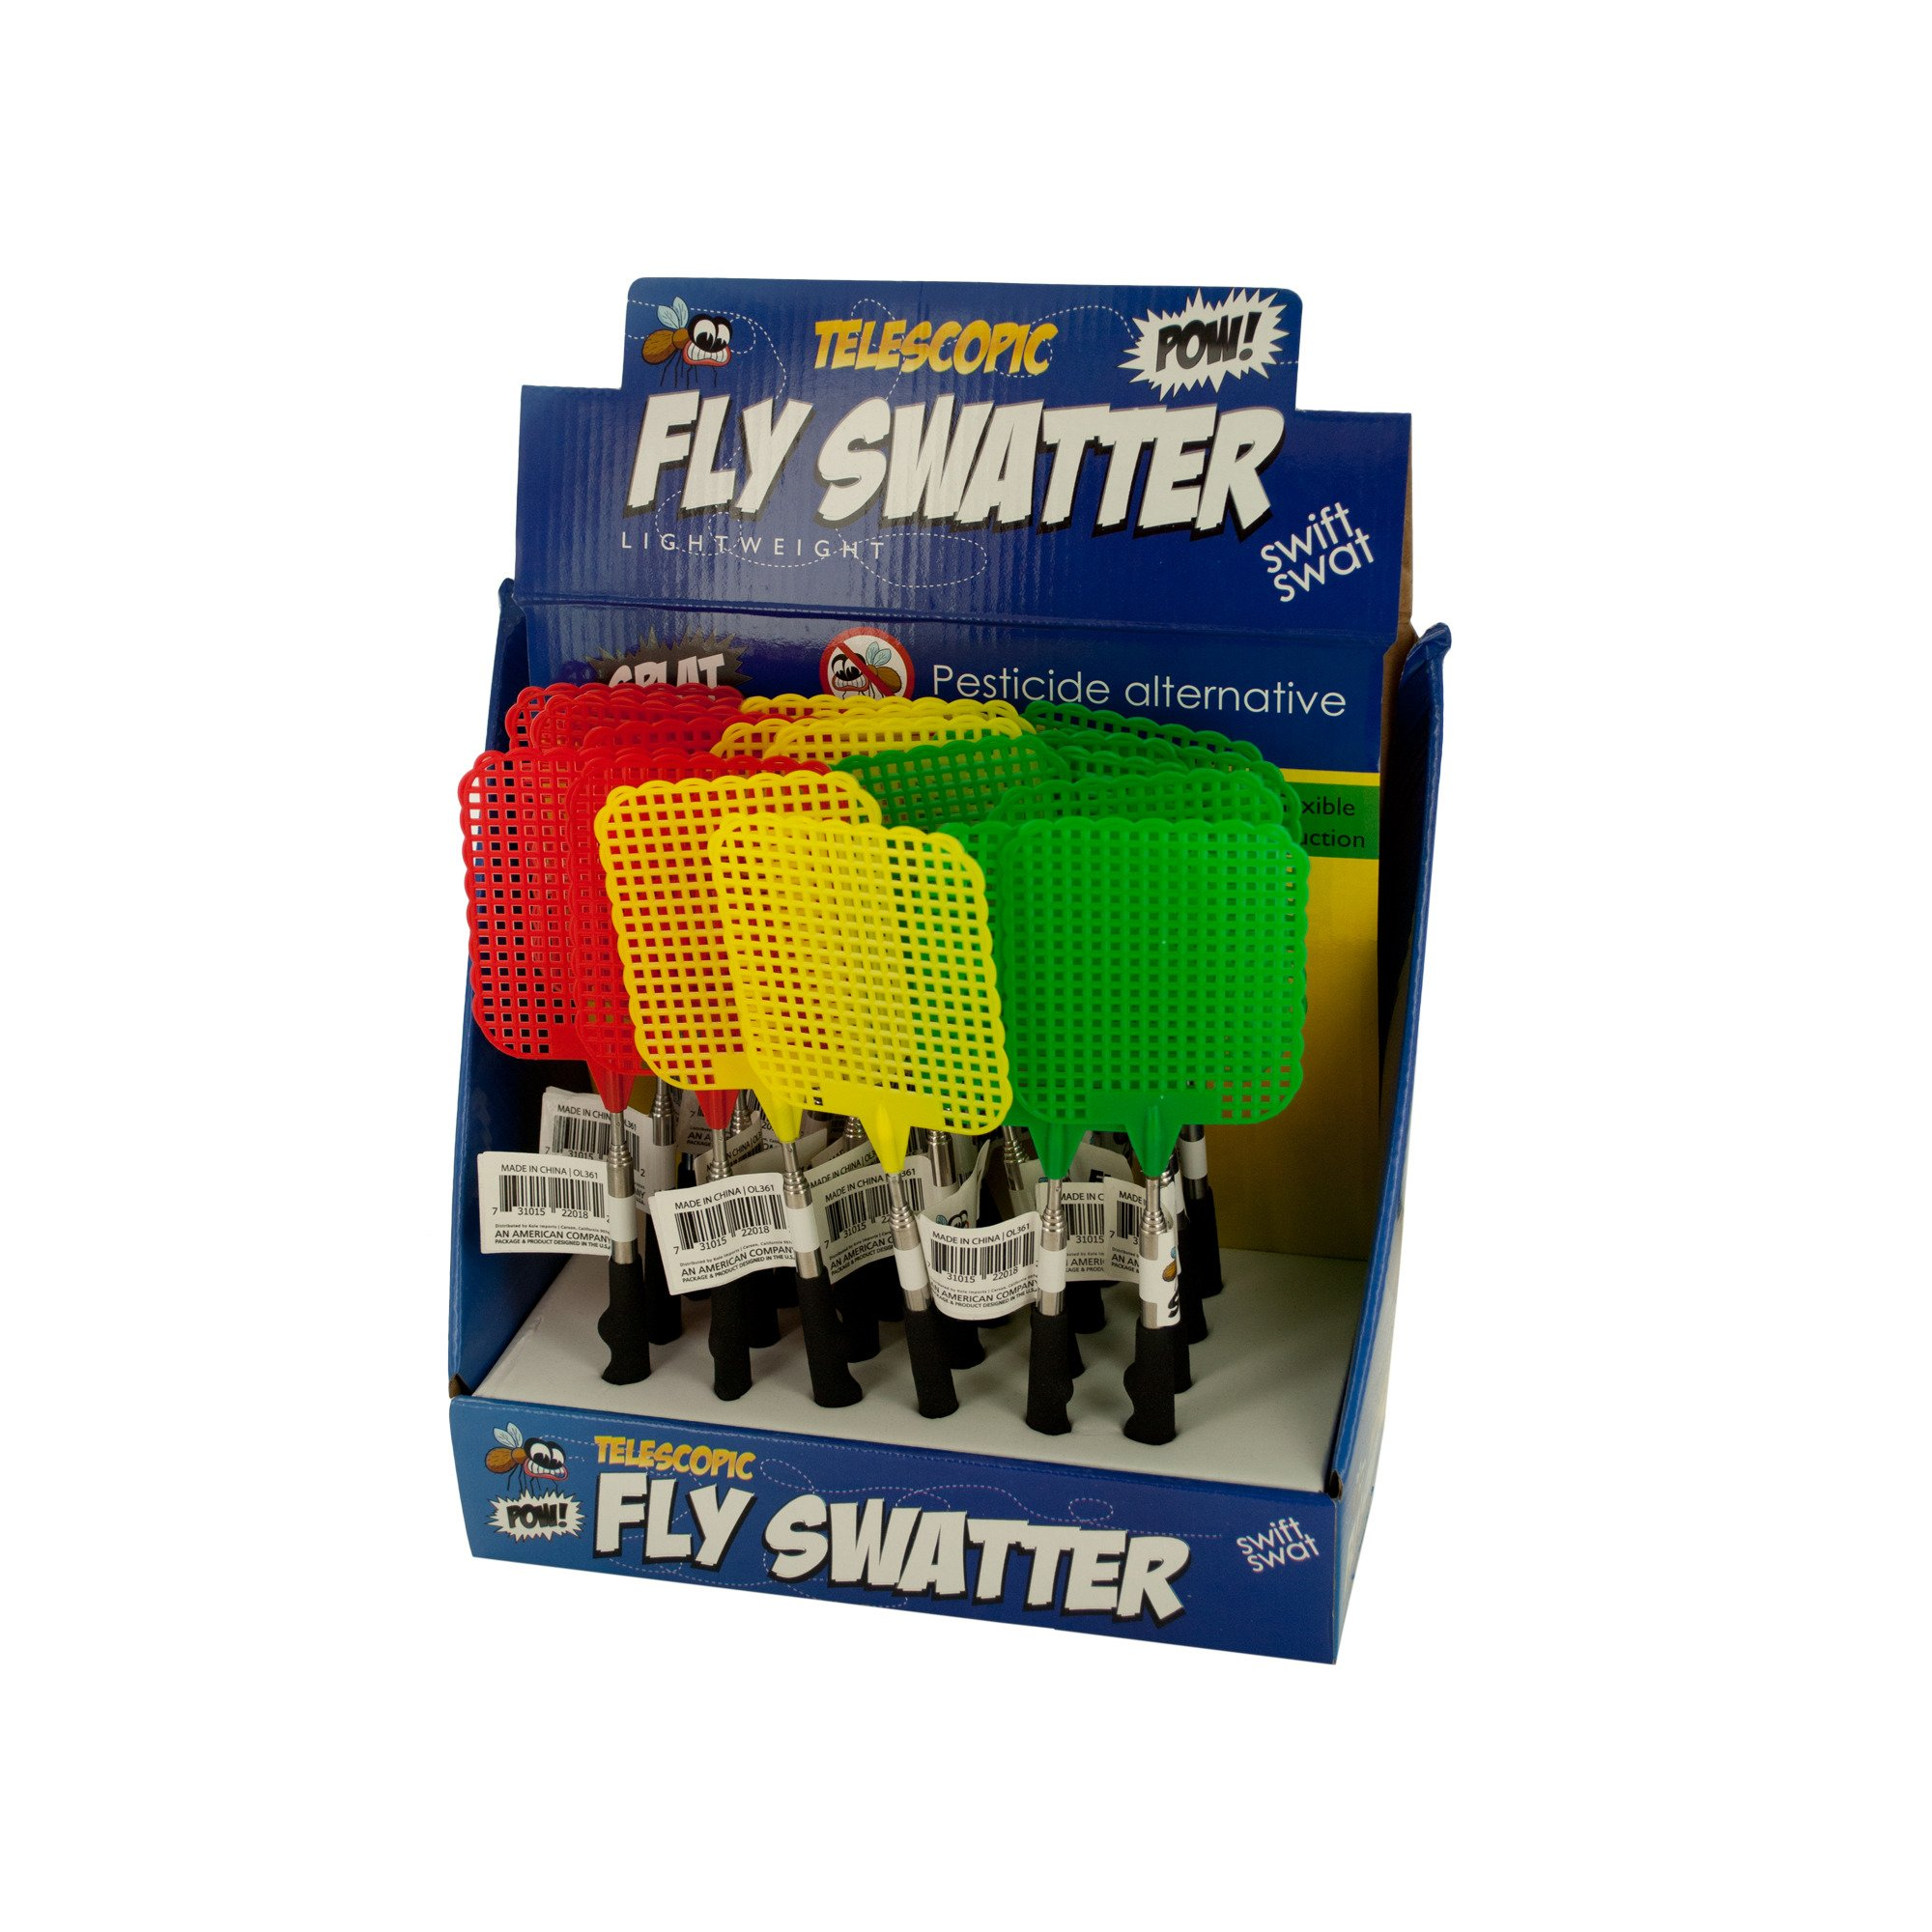 123-Wholesale - Set of 24 Telescopic Fly Swatter Countertop Display - Household Supplies Pest Control by 123-Wholesale (Image #2)